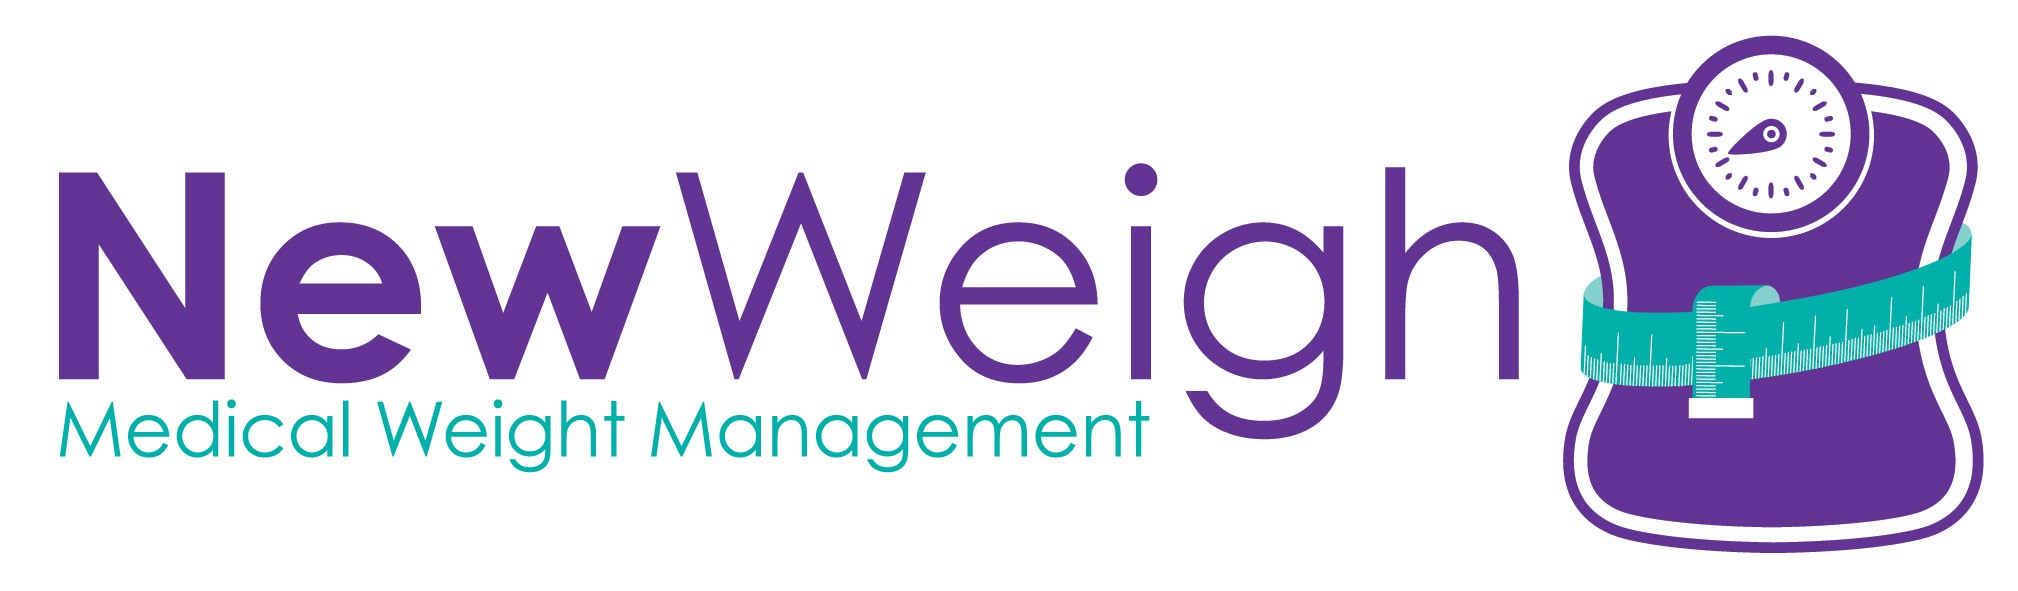 Medical Weight Management